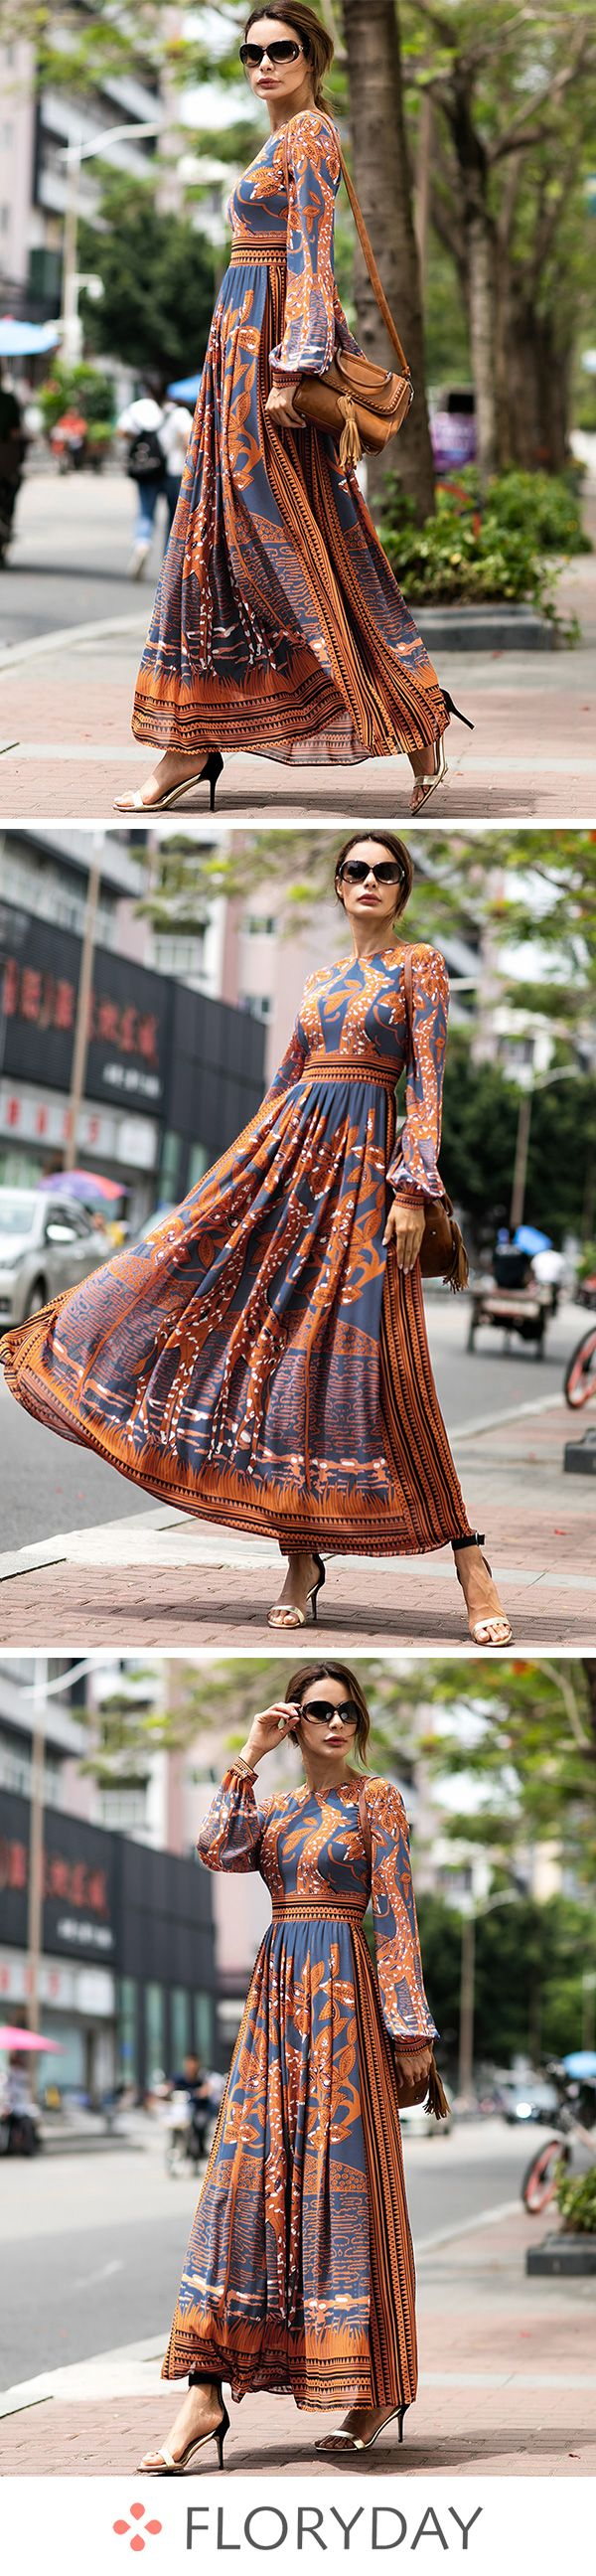 Chiffon floral long sleeve maxi aline dress chiffon dress dresses